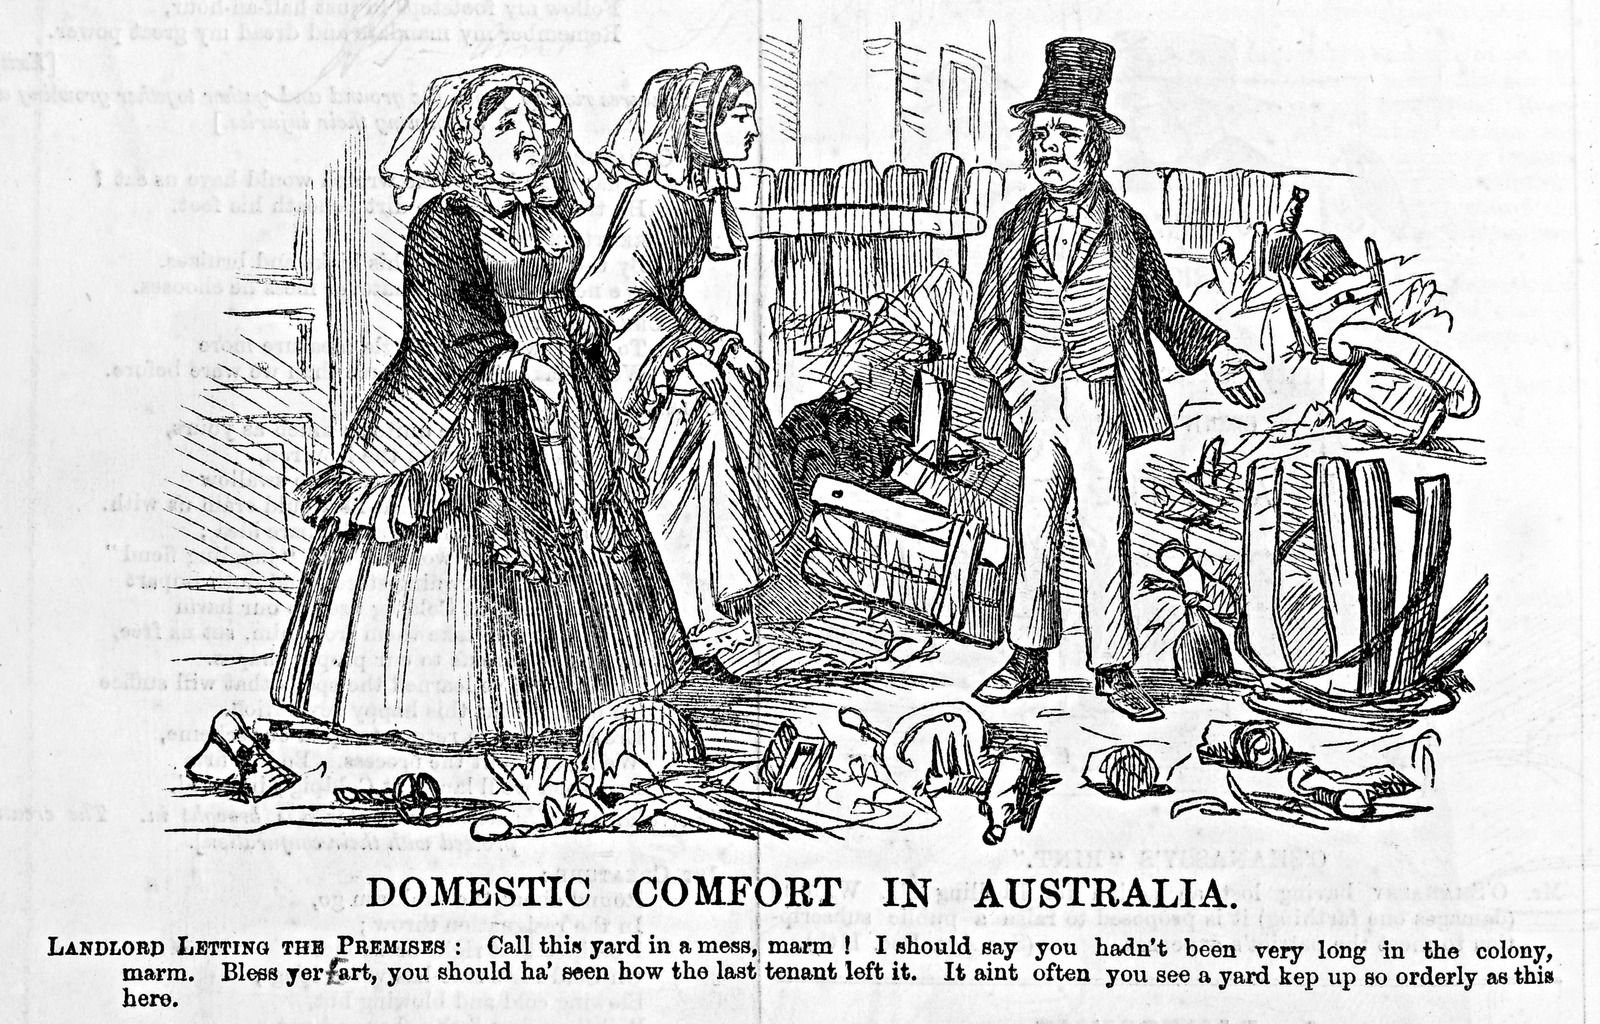 A cartoon showing two women disgusted at rubbish in a backyard.